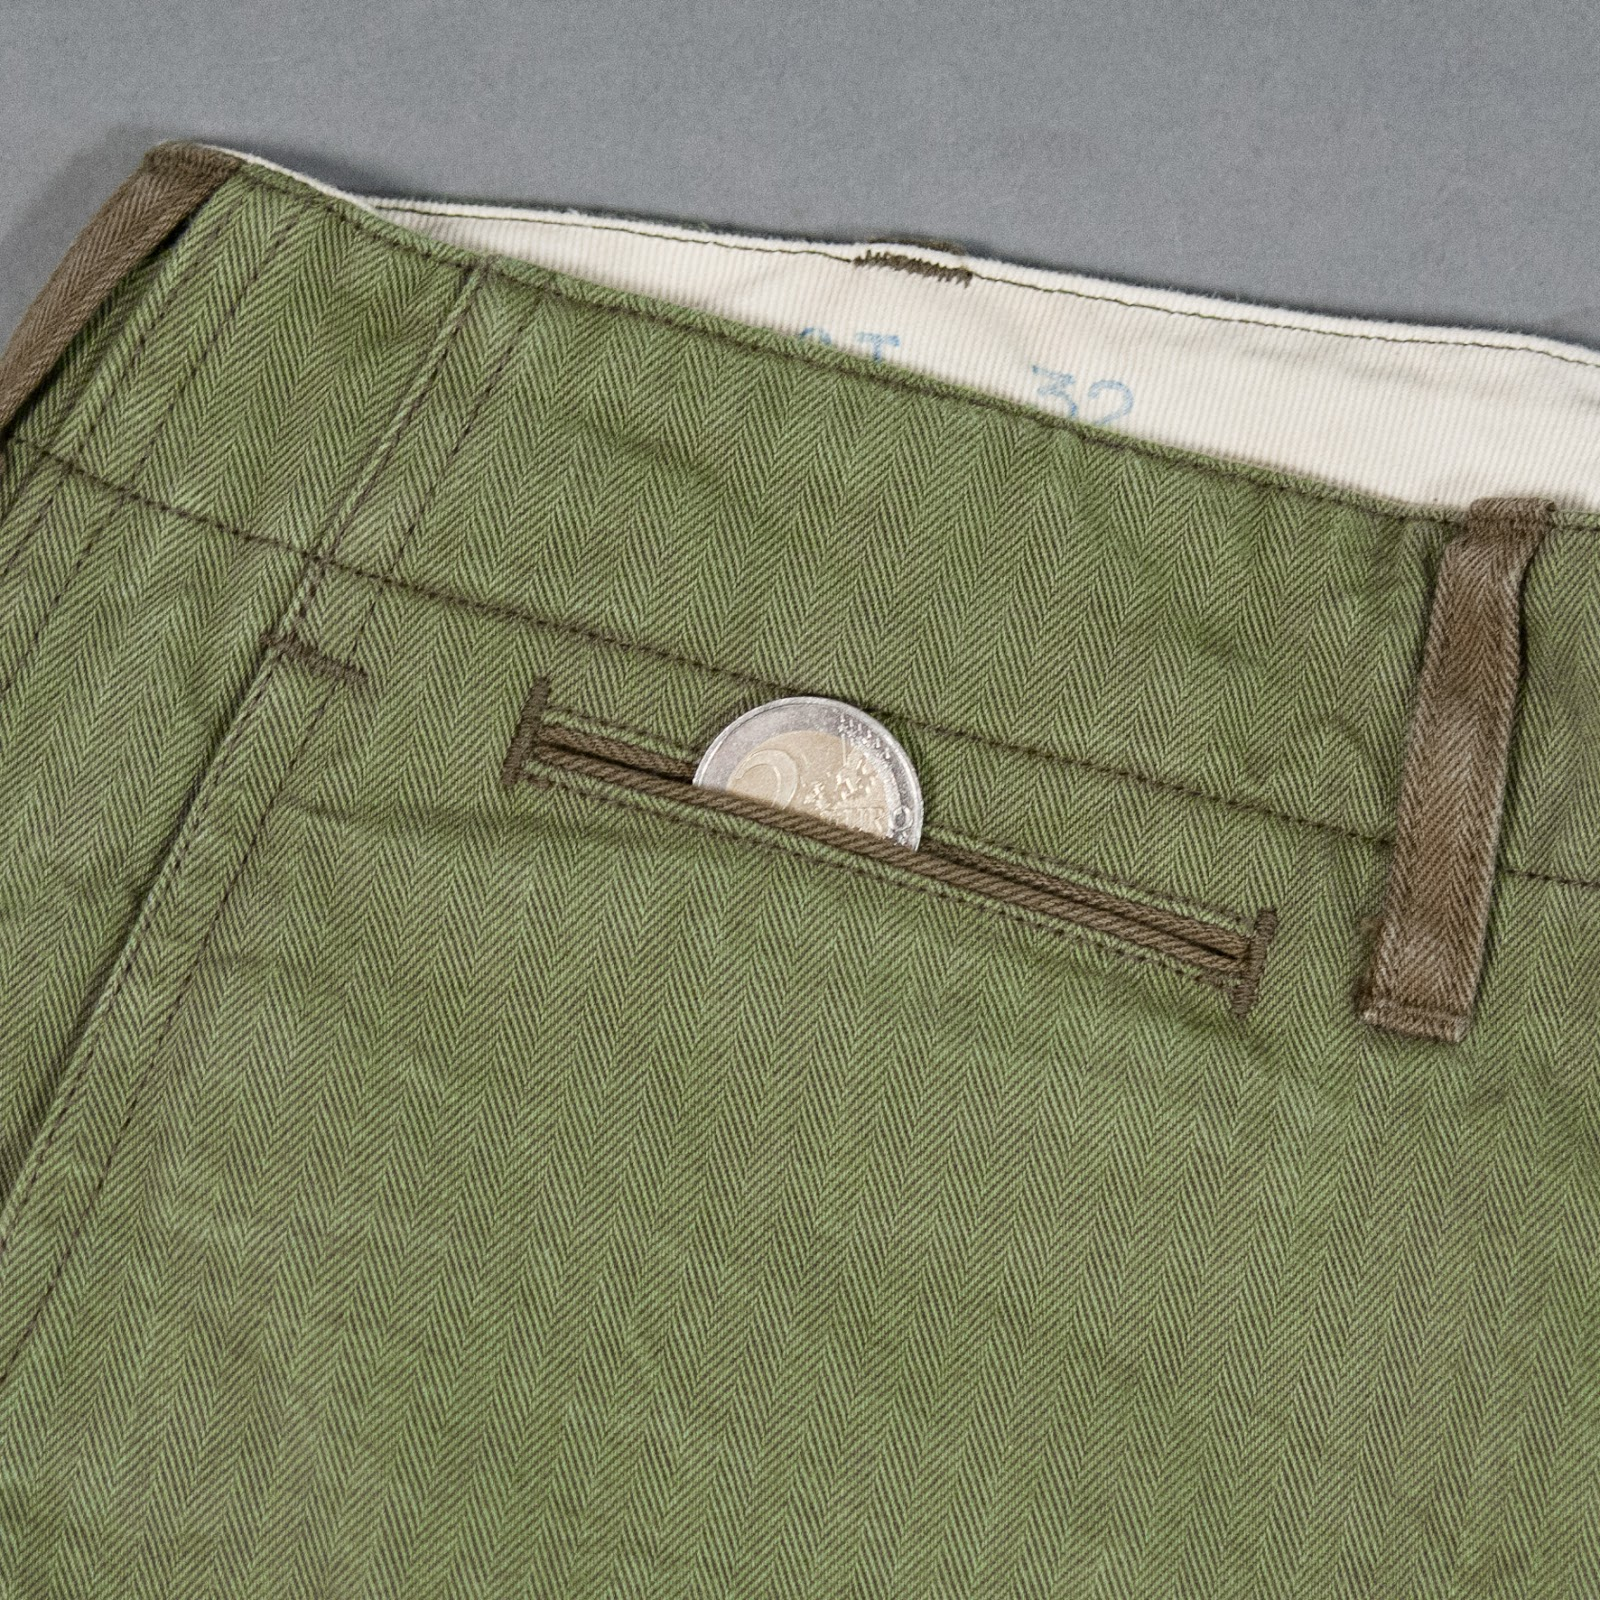 Buzz Rickson's HBT 1942 Trousers - coin pocket